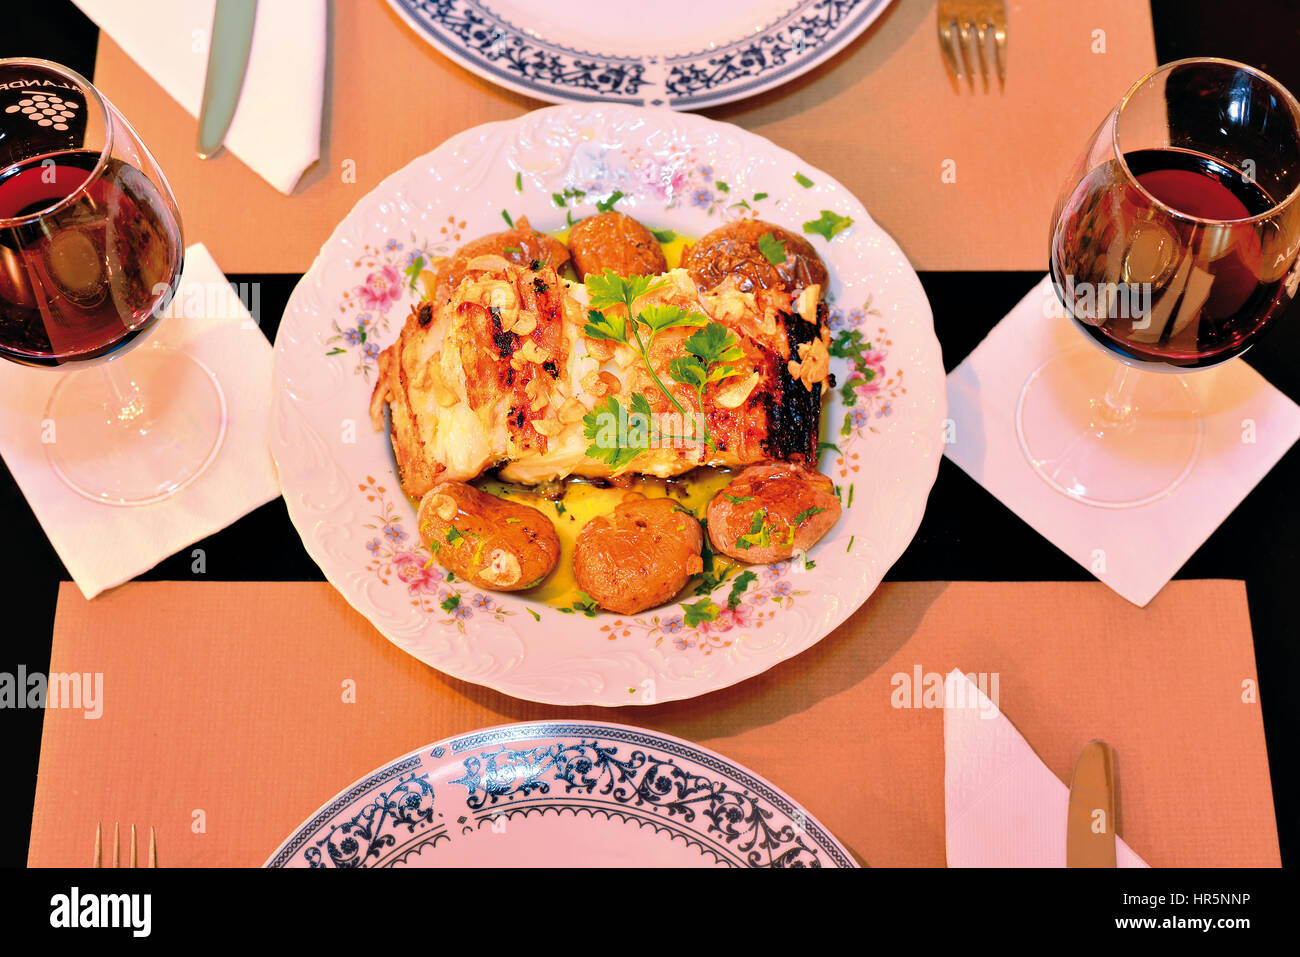 Grilled cod fish with potatoes on a prepared dinner table for two - Stock Image